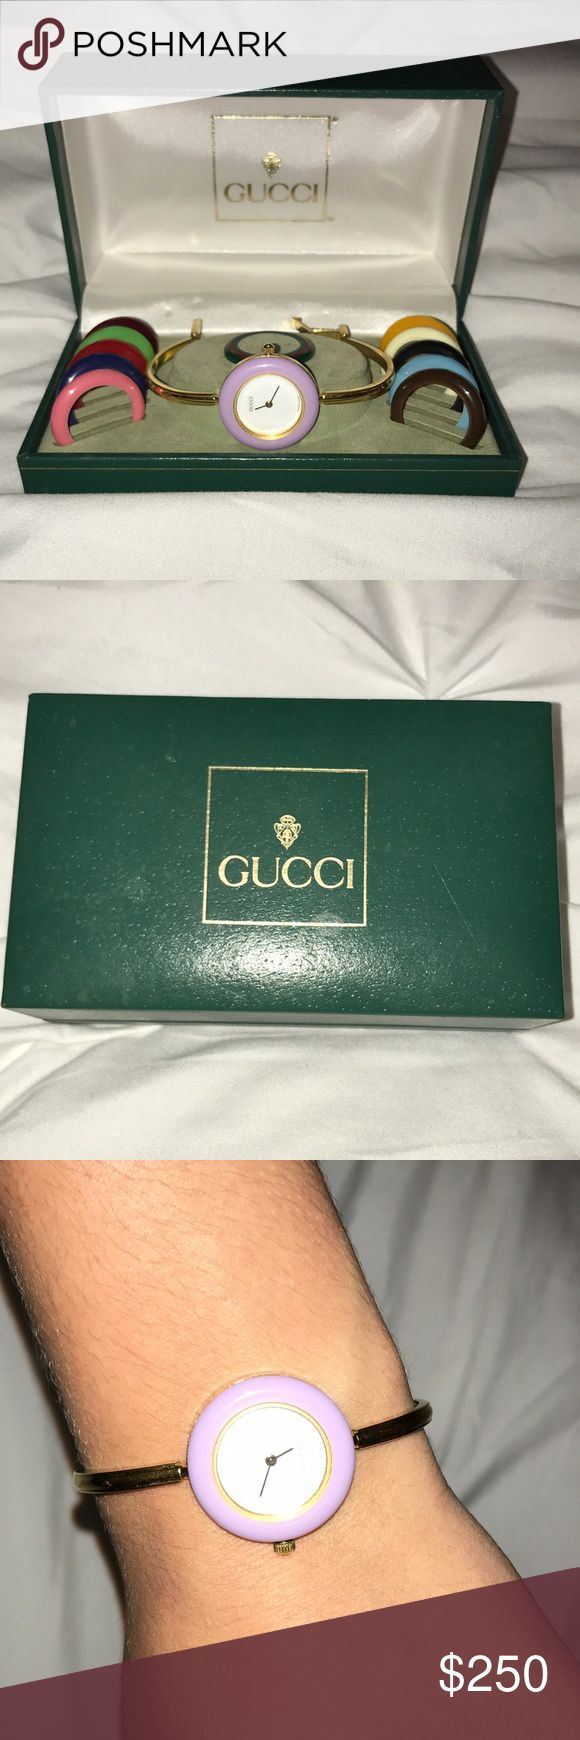 """Vintage Gucci watch Thin, Gucci watch with 12 interchangeable bezels. Never worn. The face is white with """"GUCCI"""" on the inside. Gold band. Gucci Accessories Watches"""